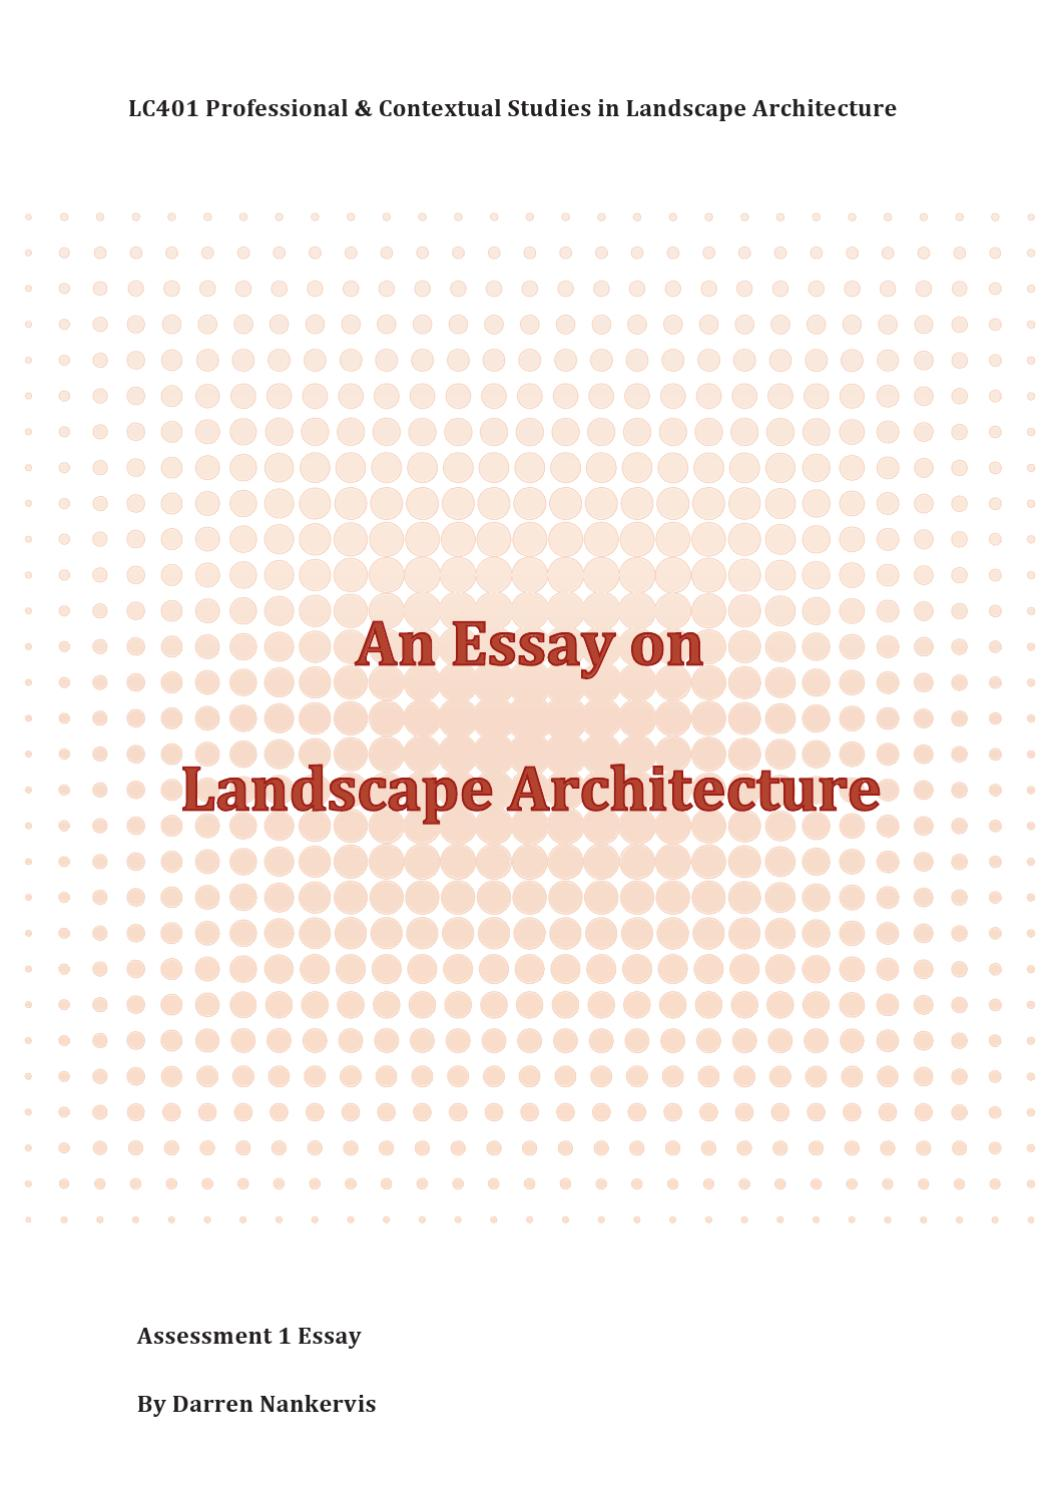 007 Landscape Architecture Essay Example Page 1 Stunning Argumentative Topics Full